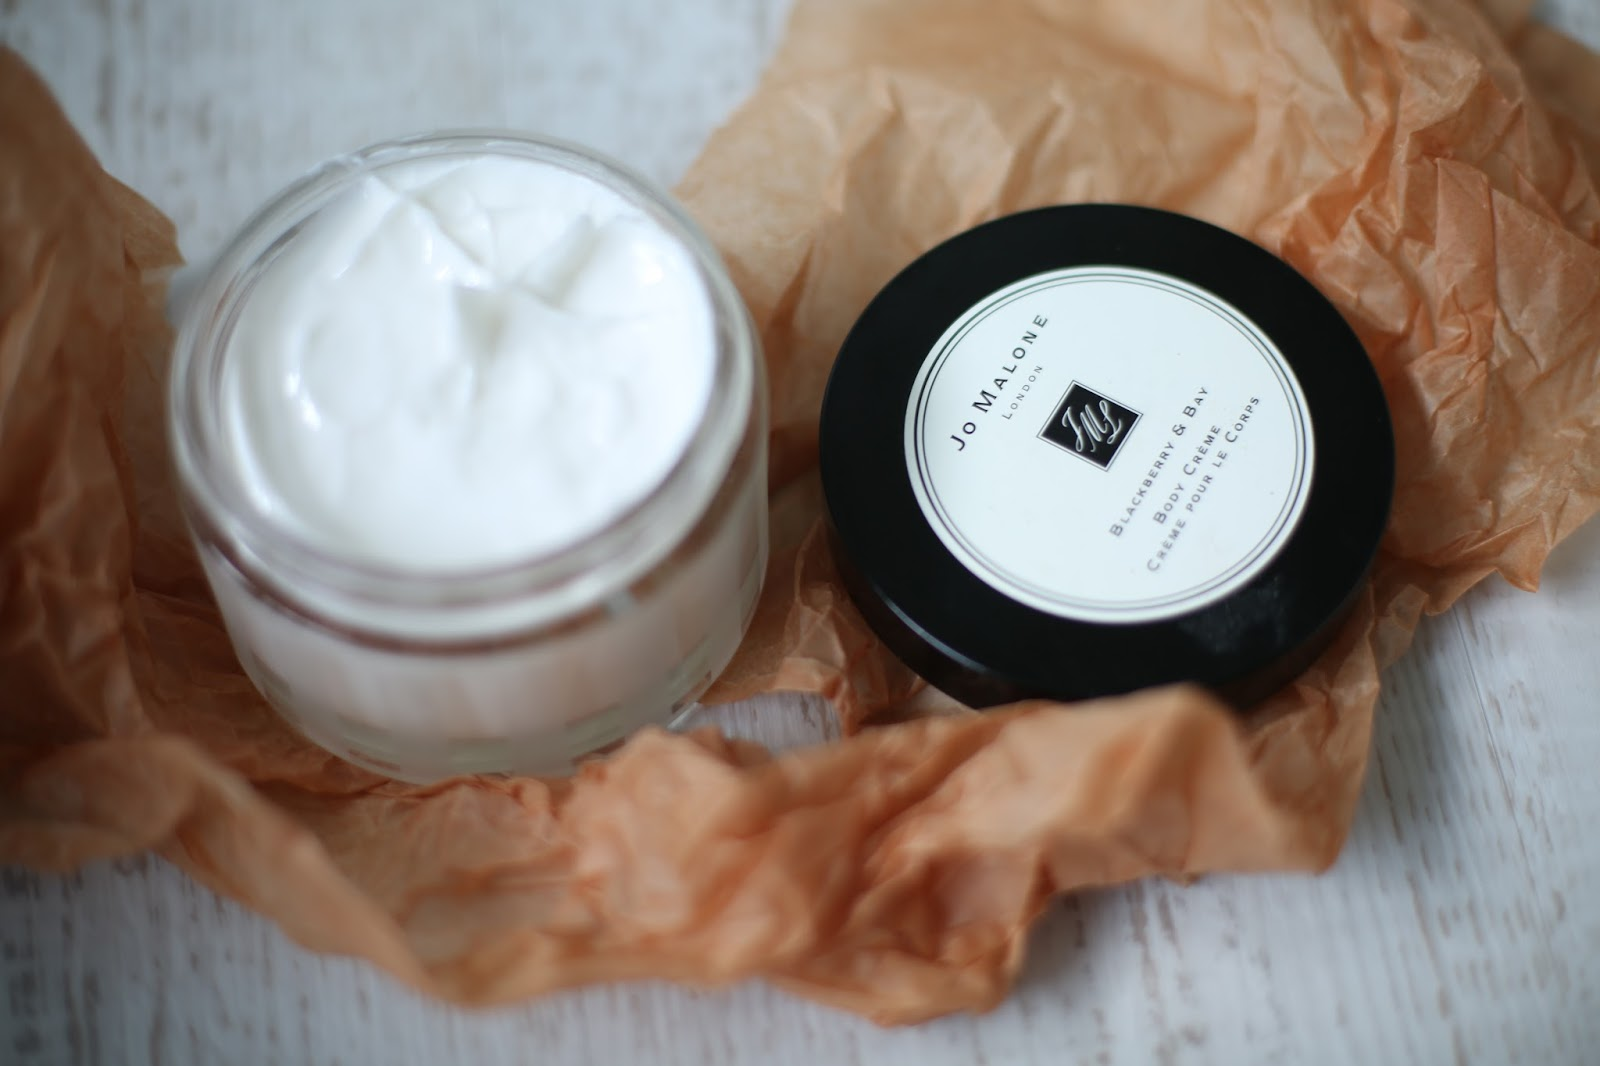 jo malone body cream review